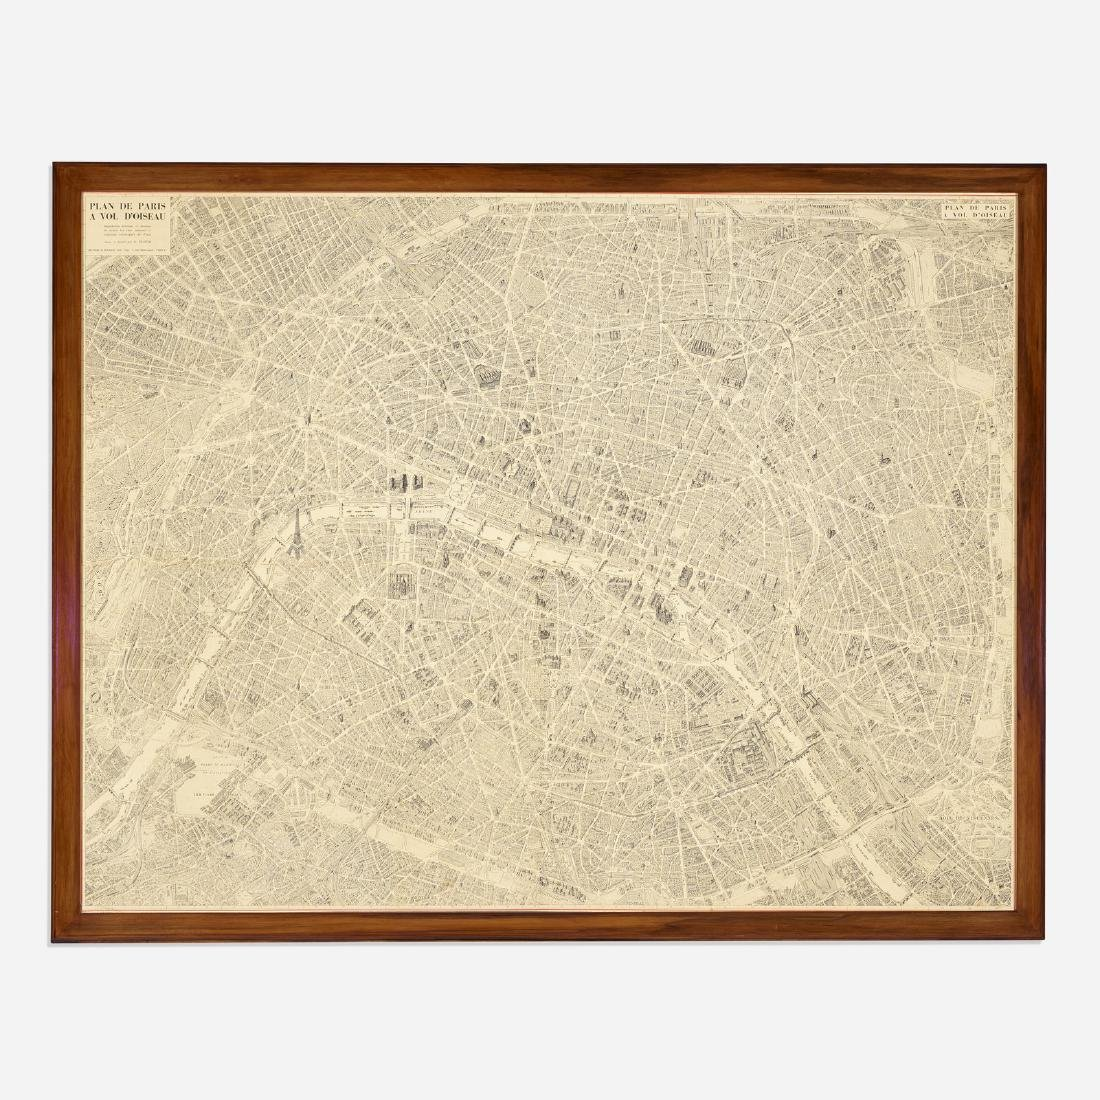 French, monumental map of Paris